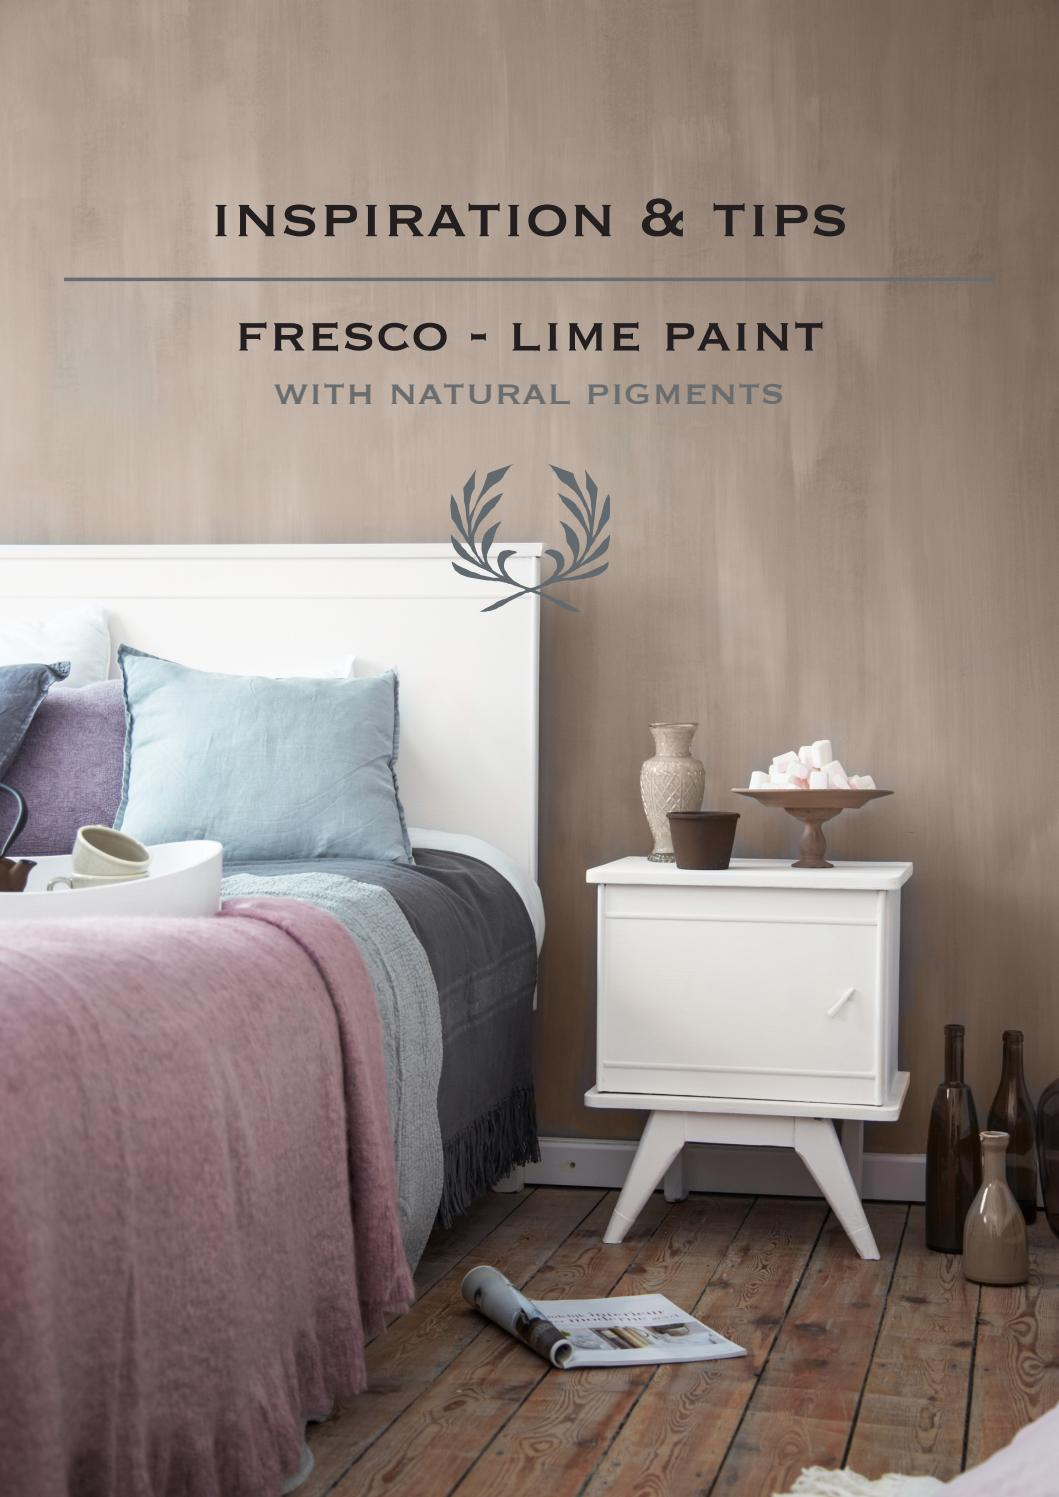 Kalkverf Muur Fresco Lime Paint Inspiration & Tips By Pure & Original